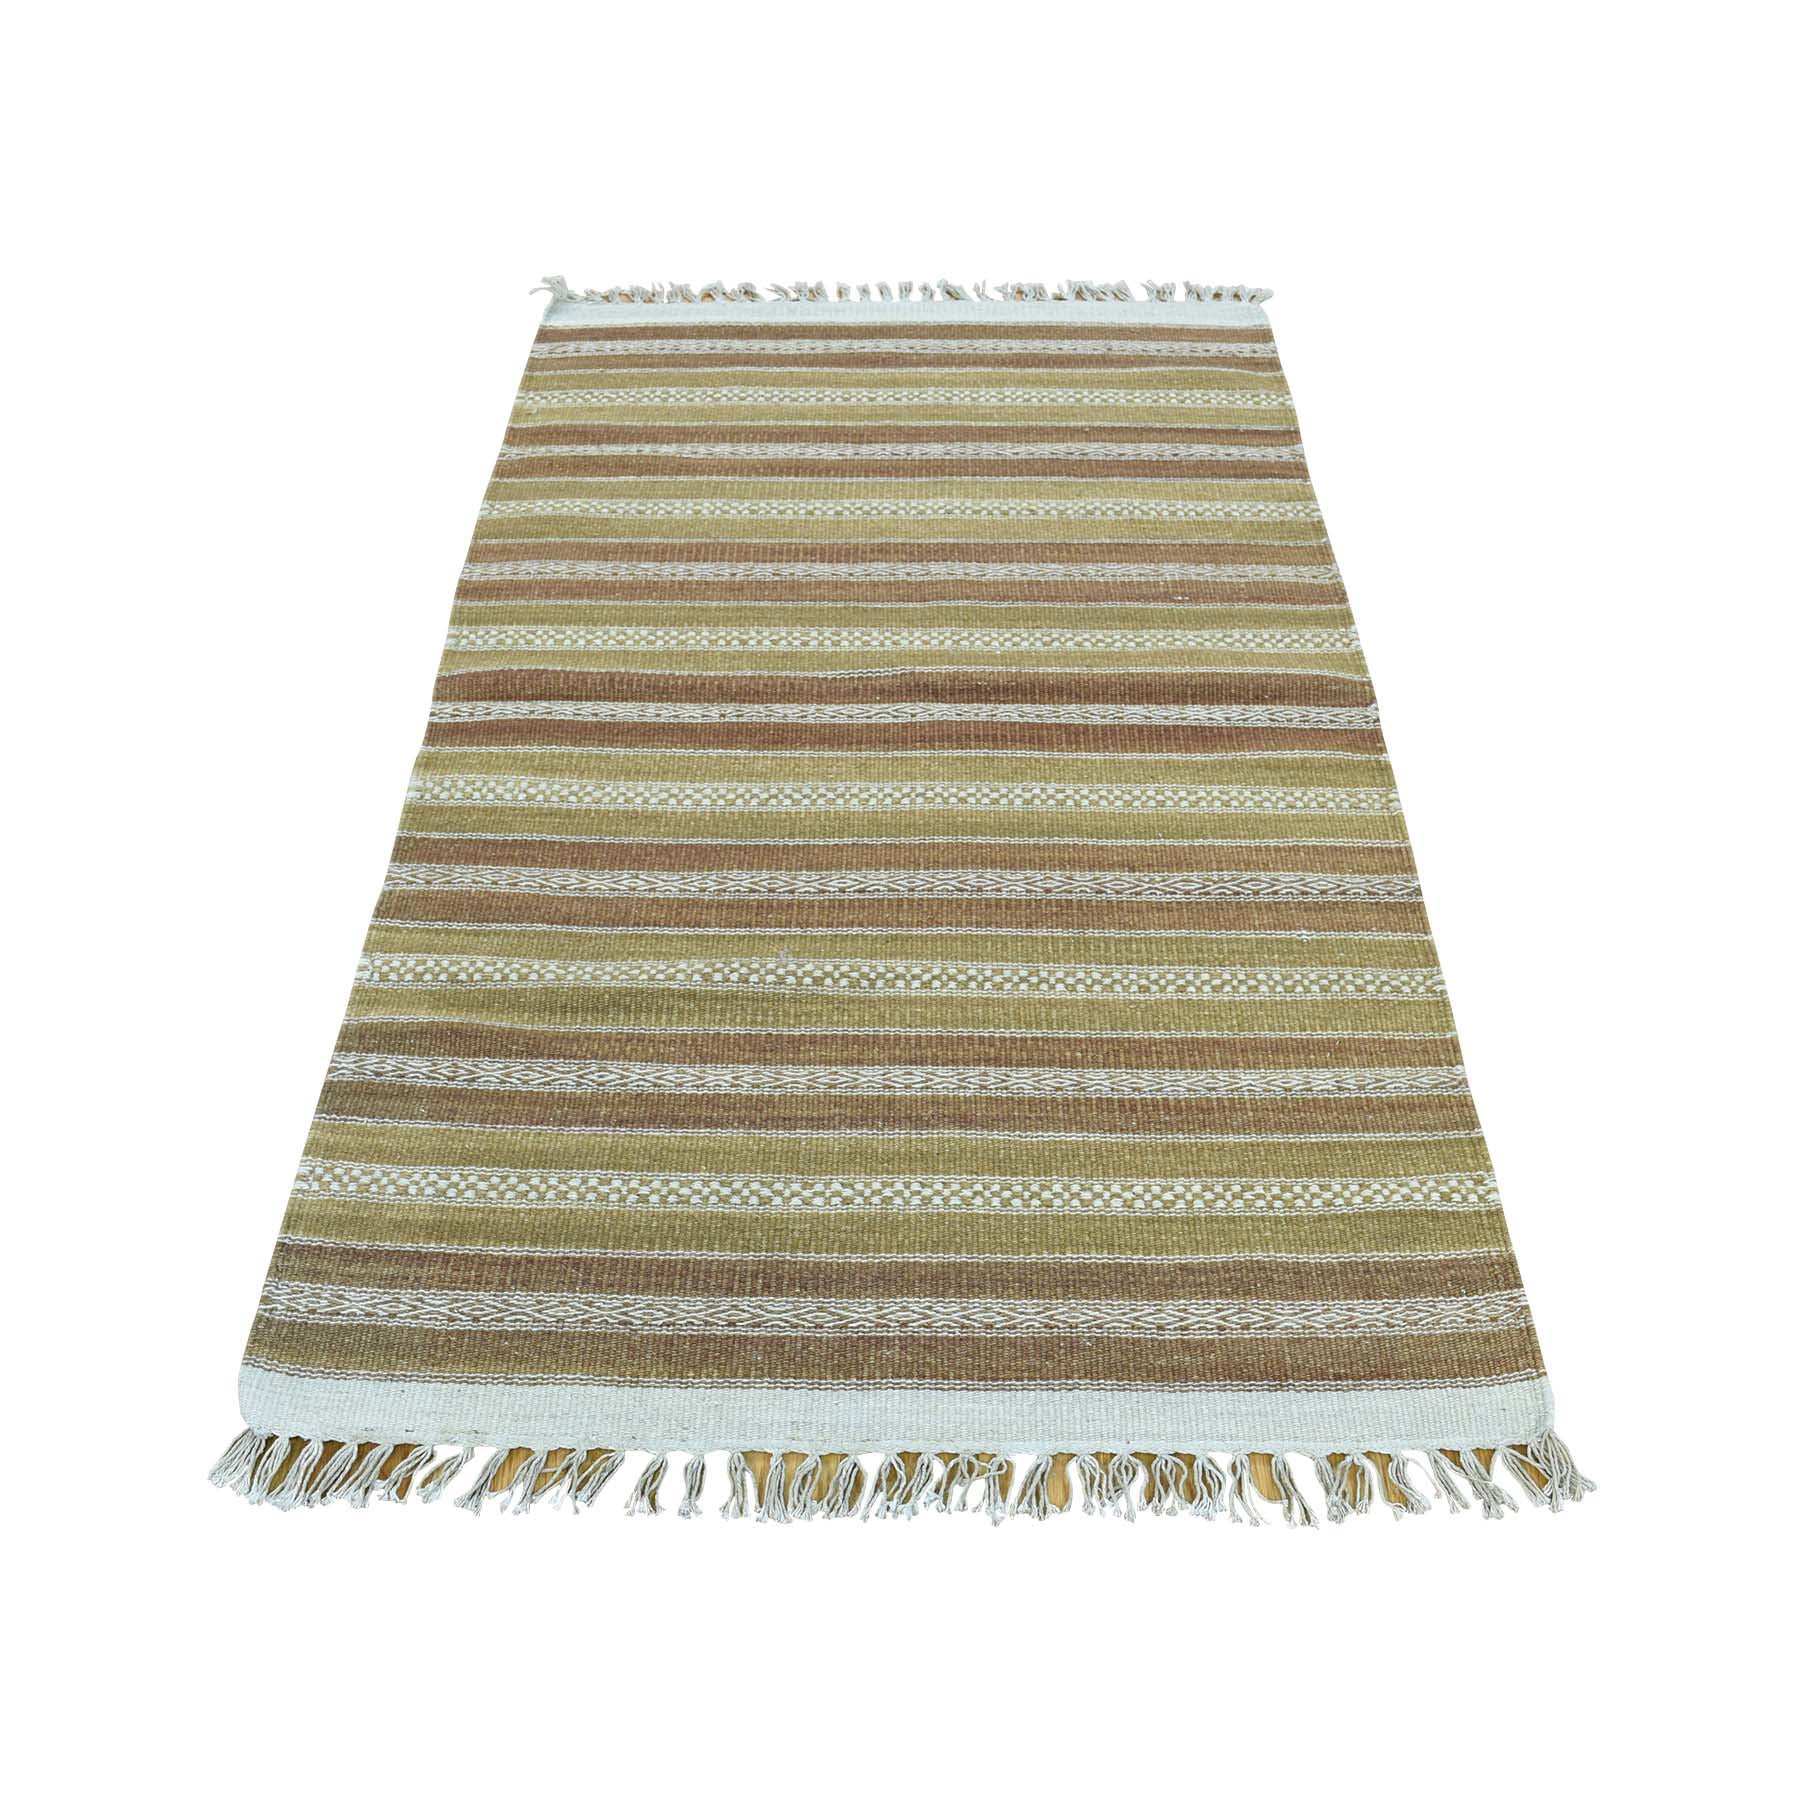 "Handmade Flat Weave Rectangle Rug > Design# SH31862 > Size: 2'-9"" x 5'-1"" [ONLINE ONLY]"